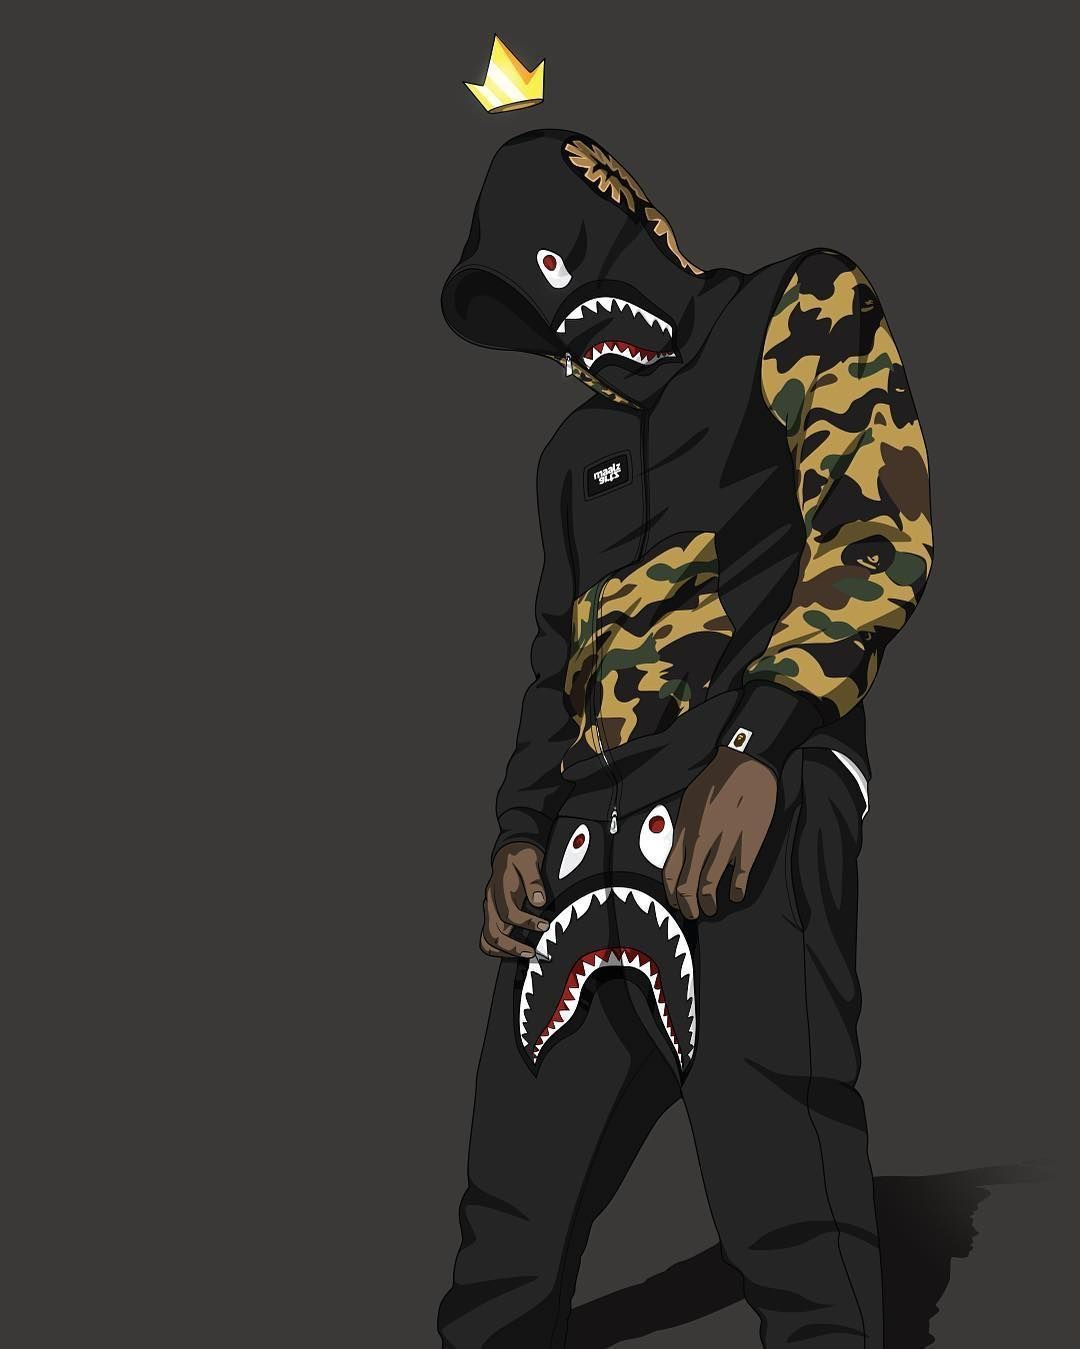 1080x1349 Pin by anonymous hacker on DOPE | Pinterest | Hypebeast, Bape and ...